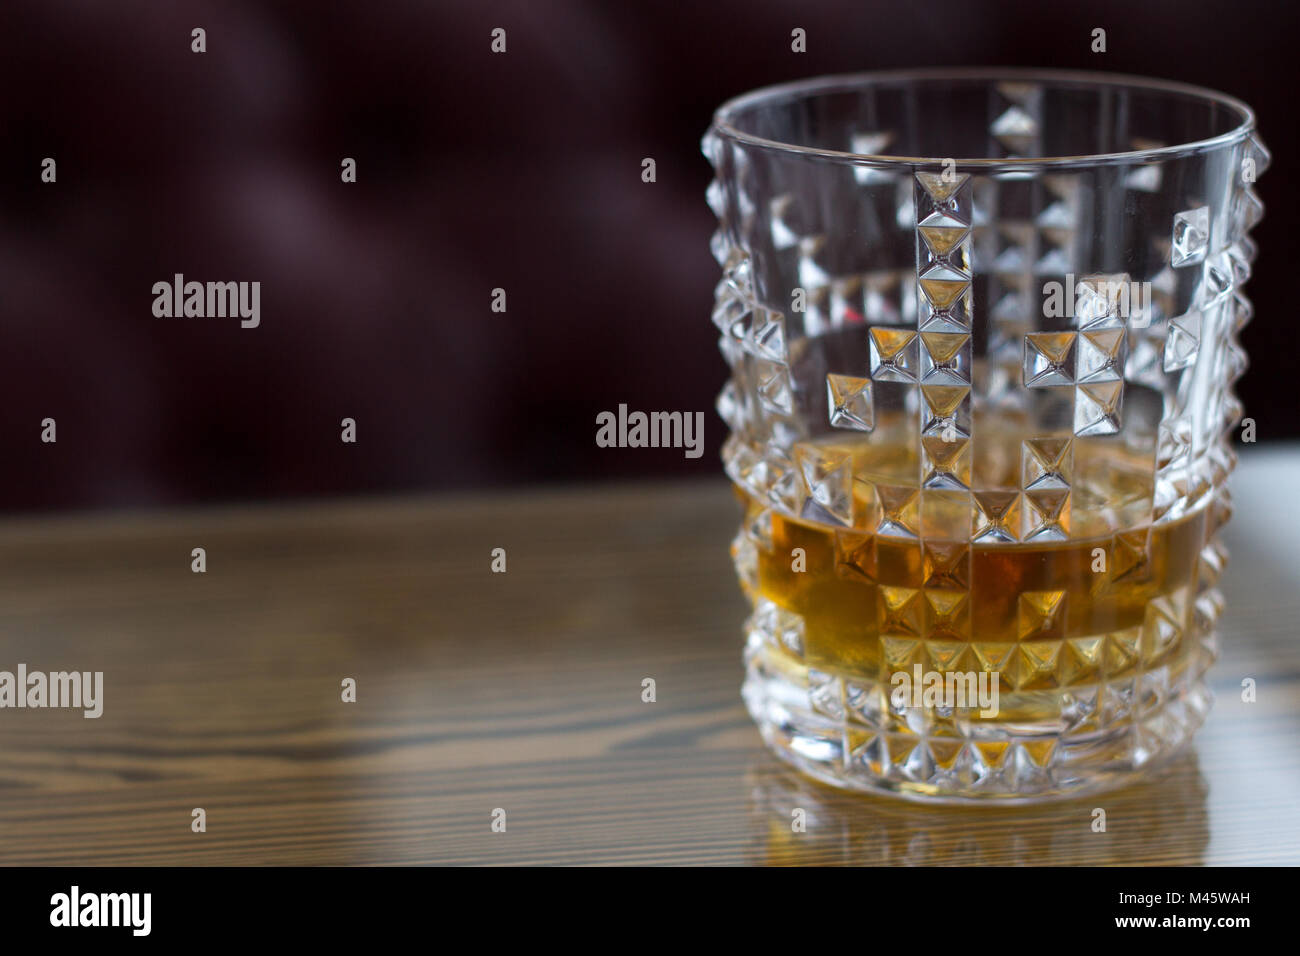 Whiskey In A Glass On The Background Of A Leather Sofa Stock Photo:  174691961   Alamy